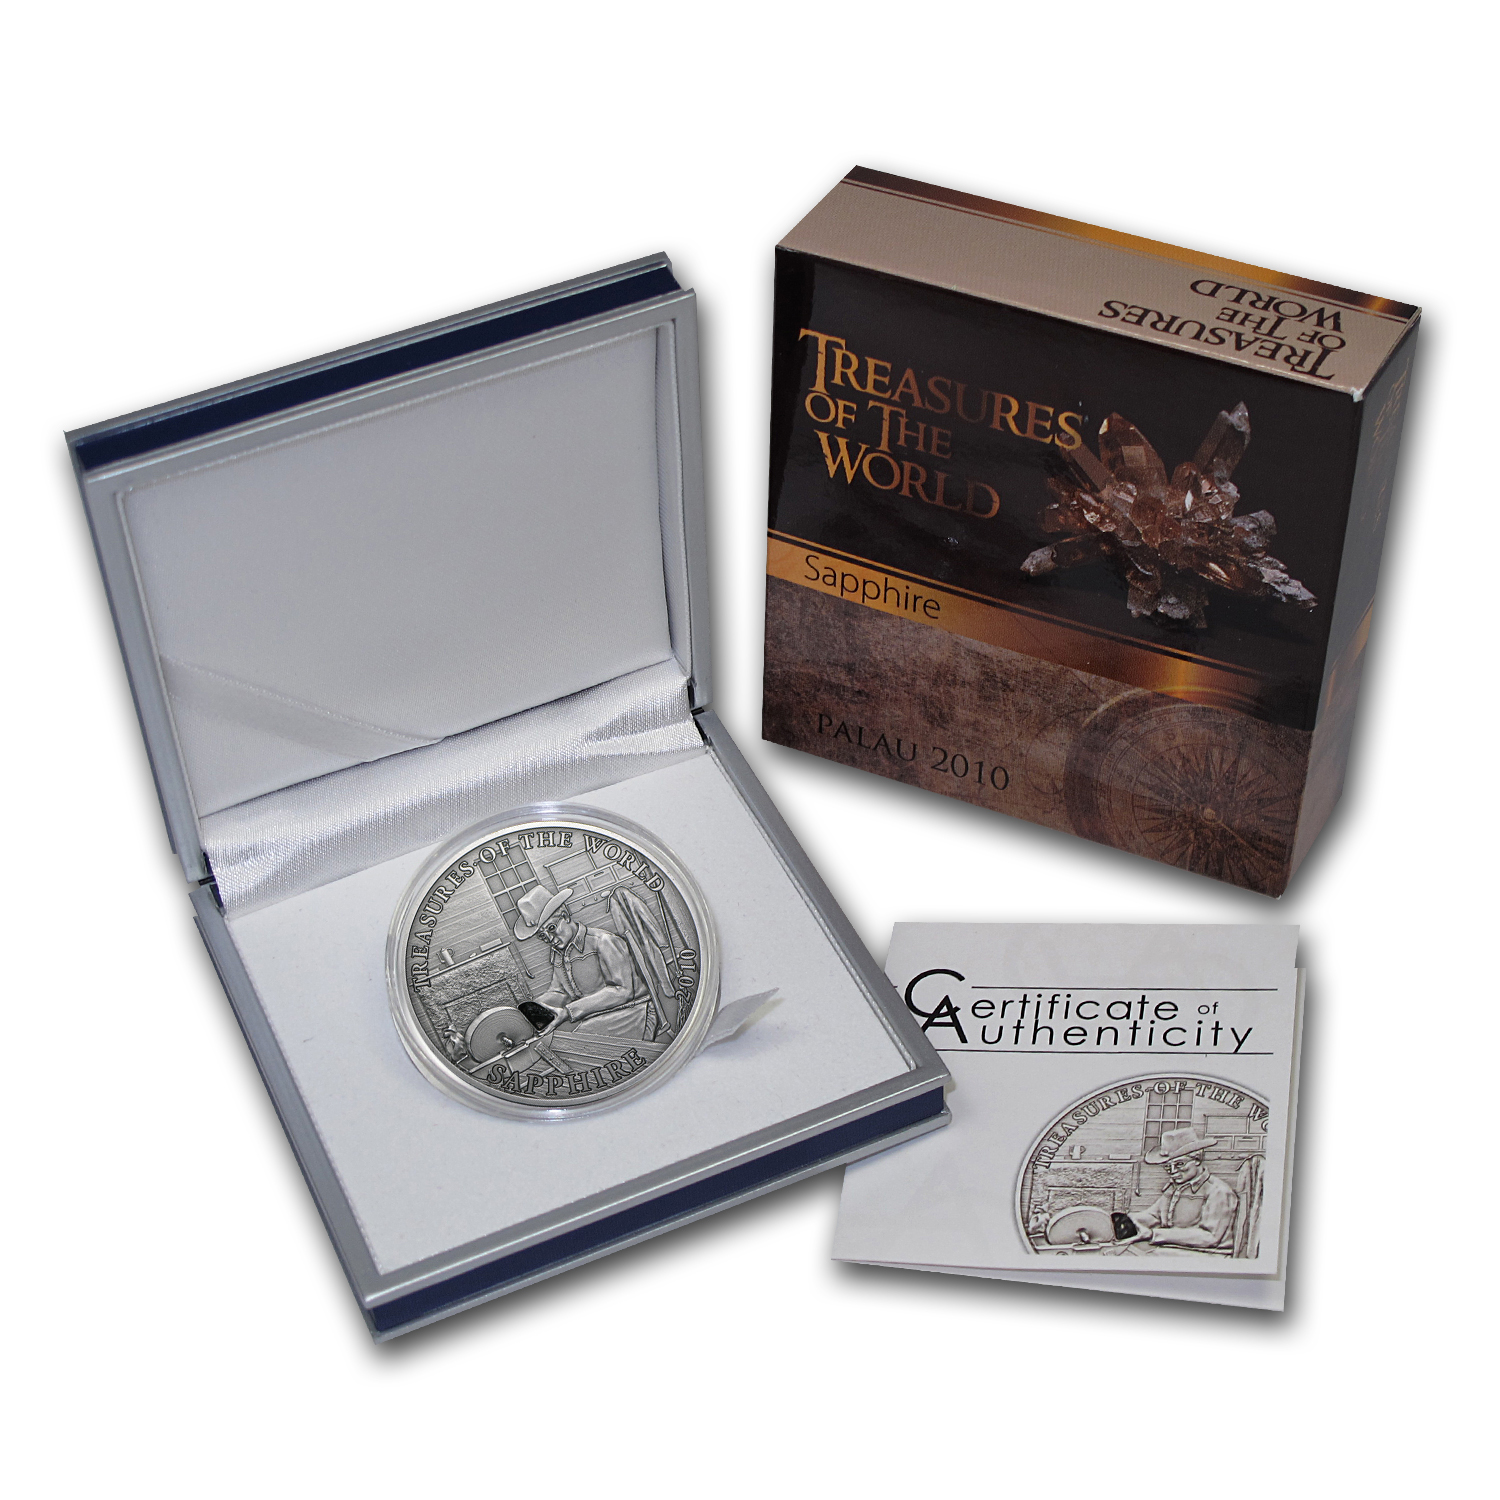 Palau 2010 Silver Proof $5 Treasures of the World - Sapphire